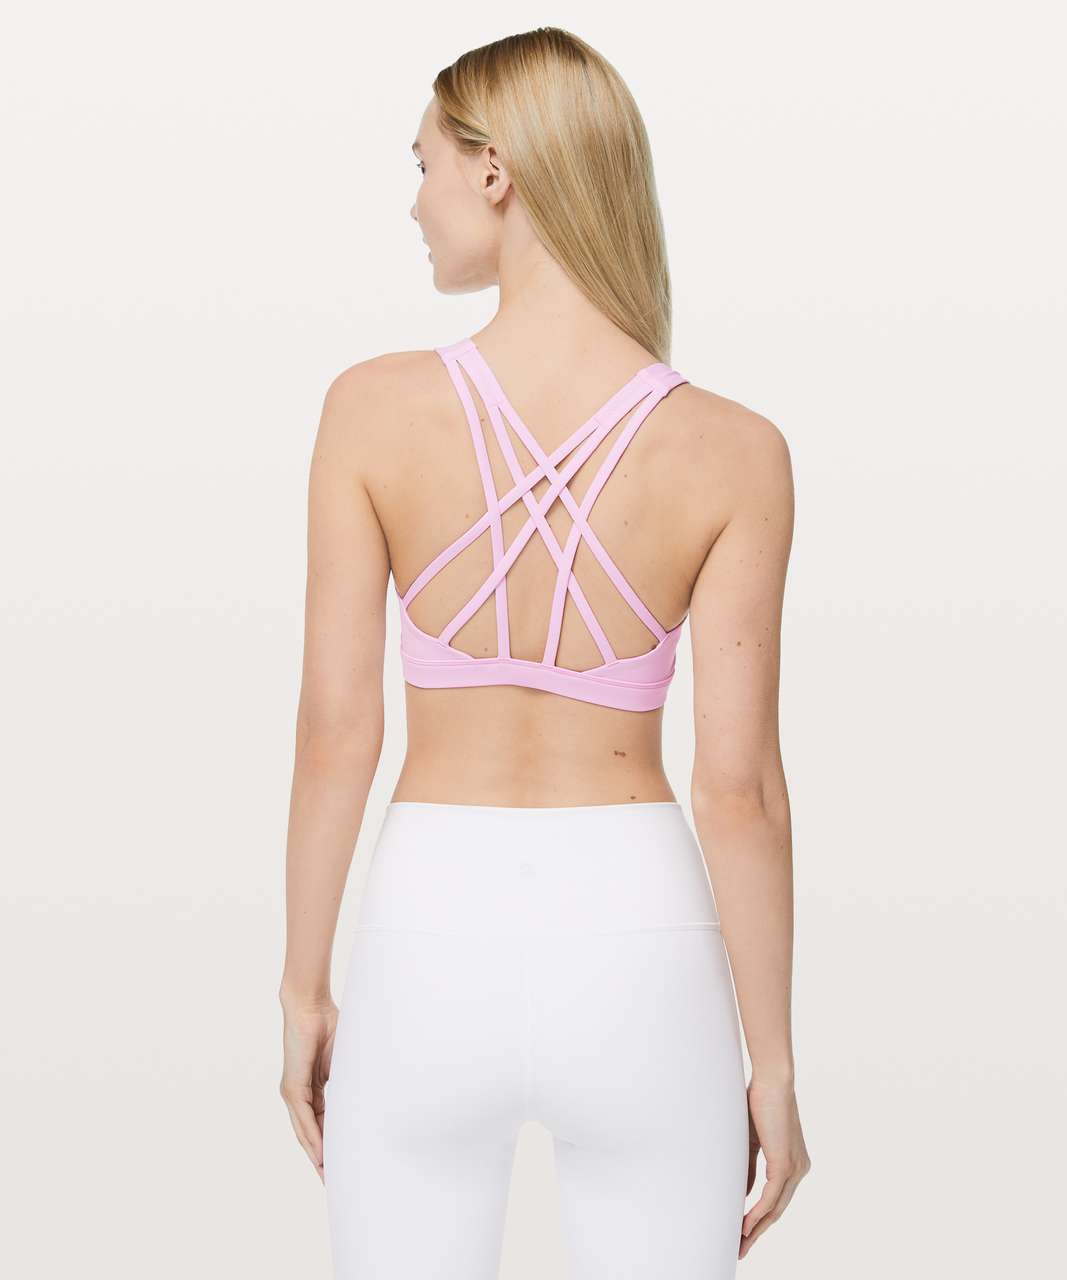 Lululemon Free To Be Serene Bra - Cherry Blossom Pink